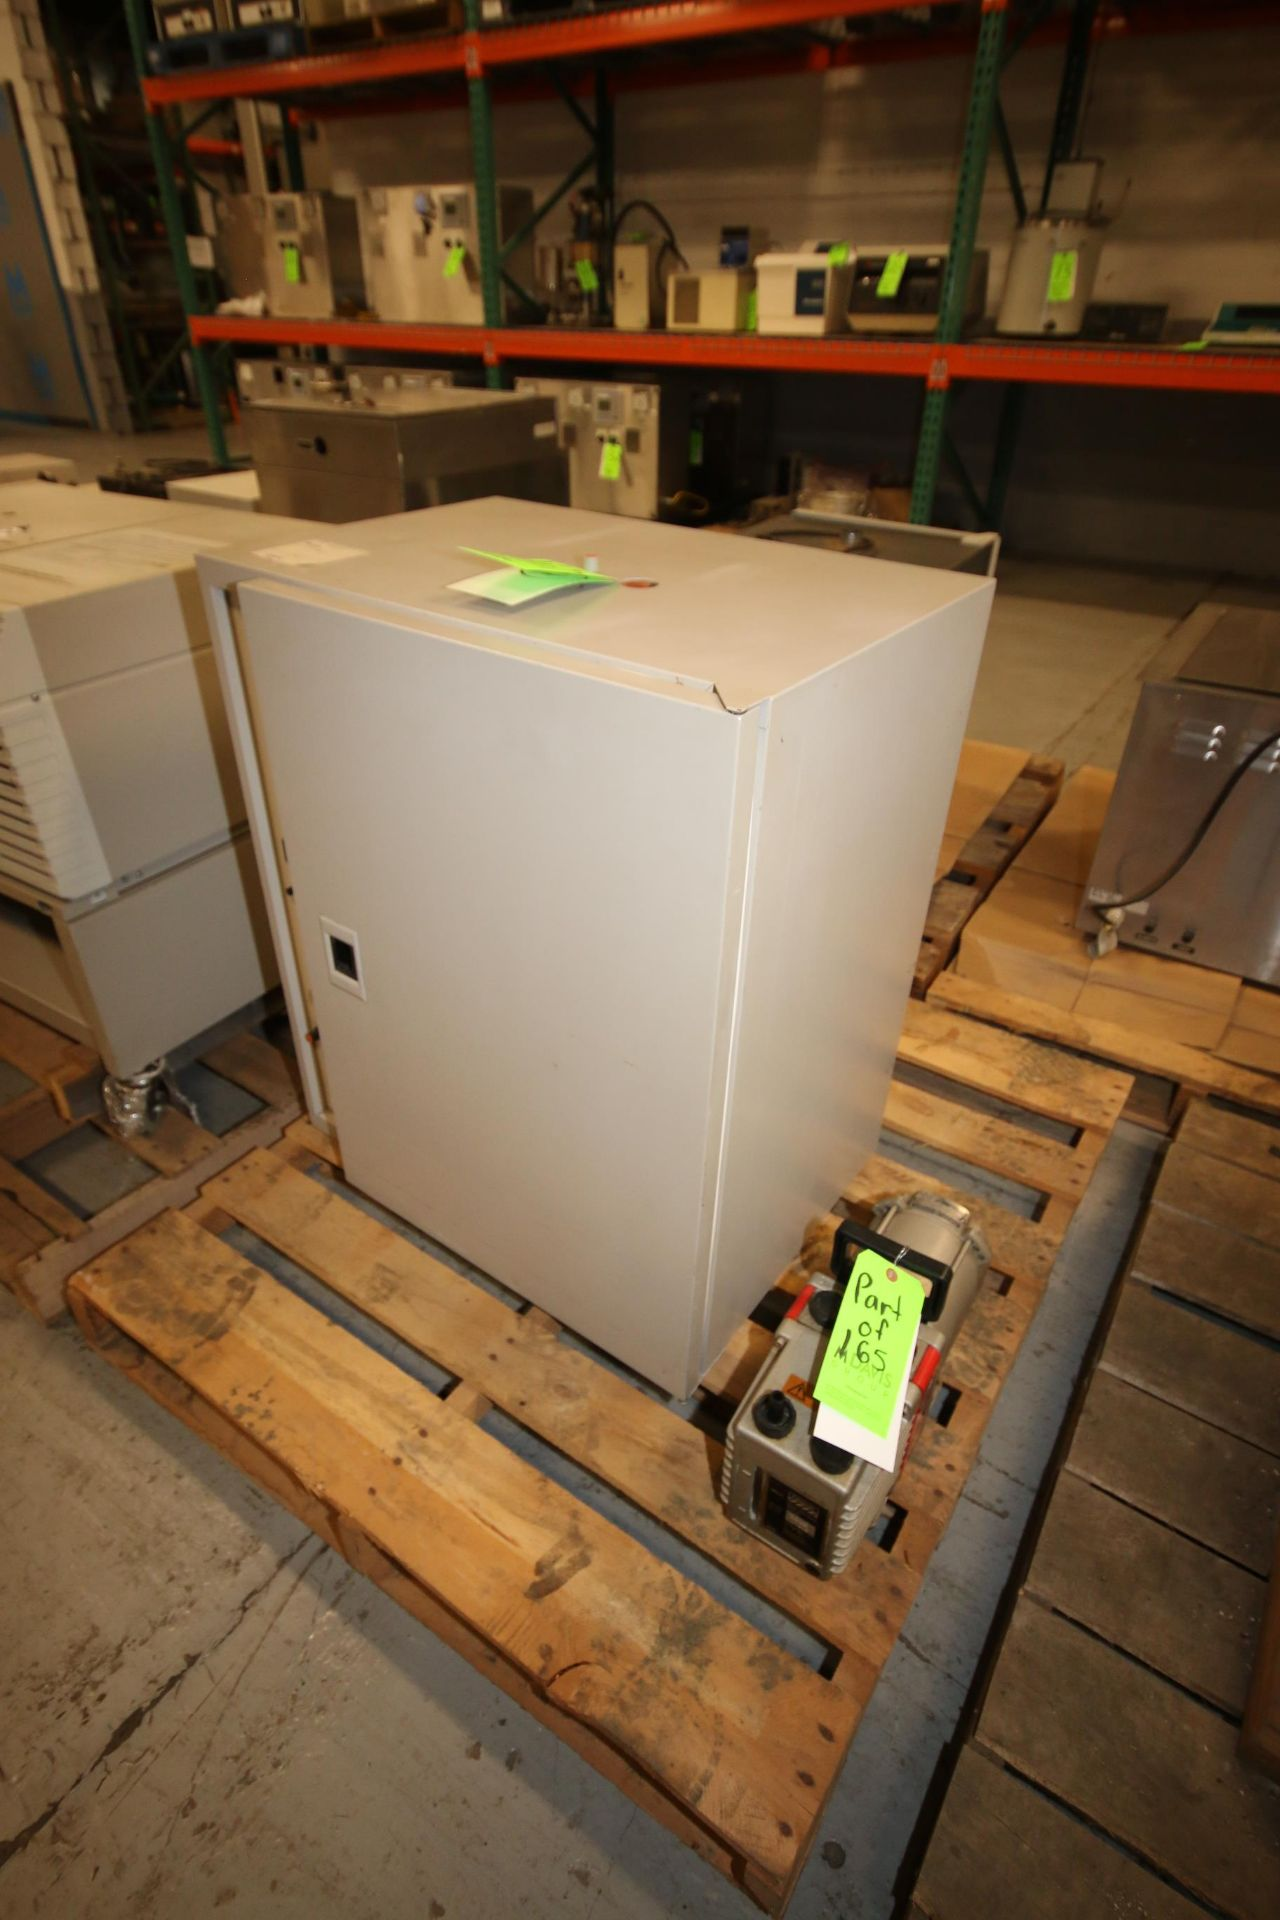 Lot 165 - Hybaid Hybridisation Oven, S/N 522, with Vacuum Pump